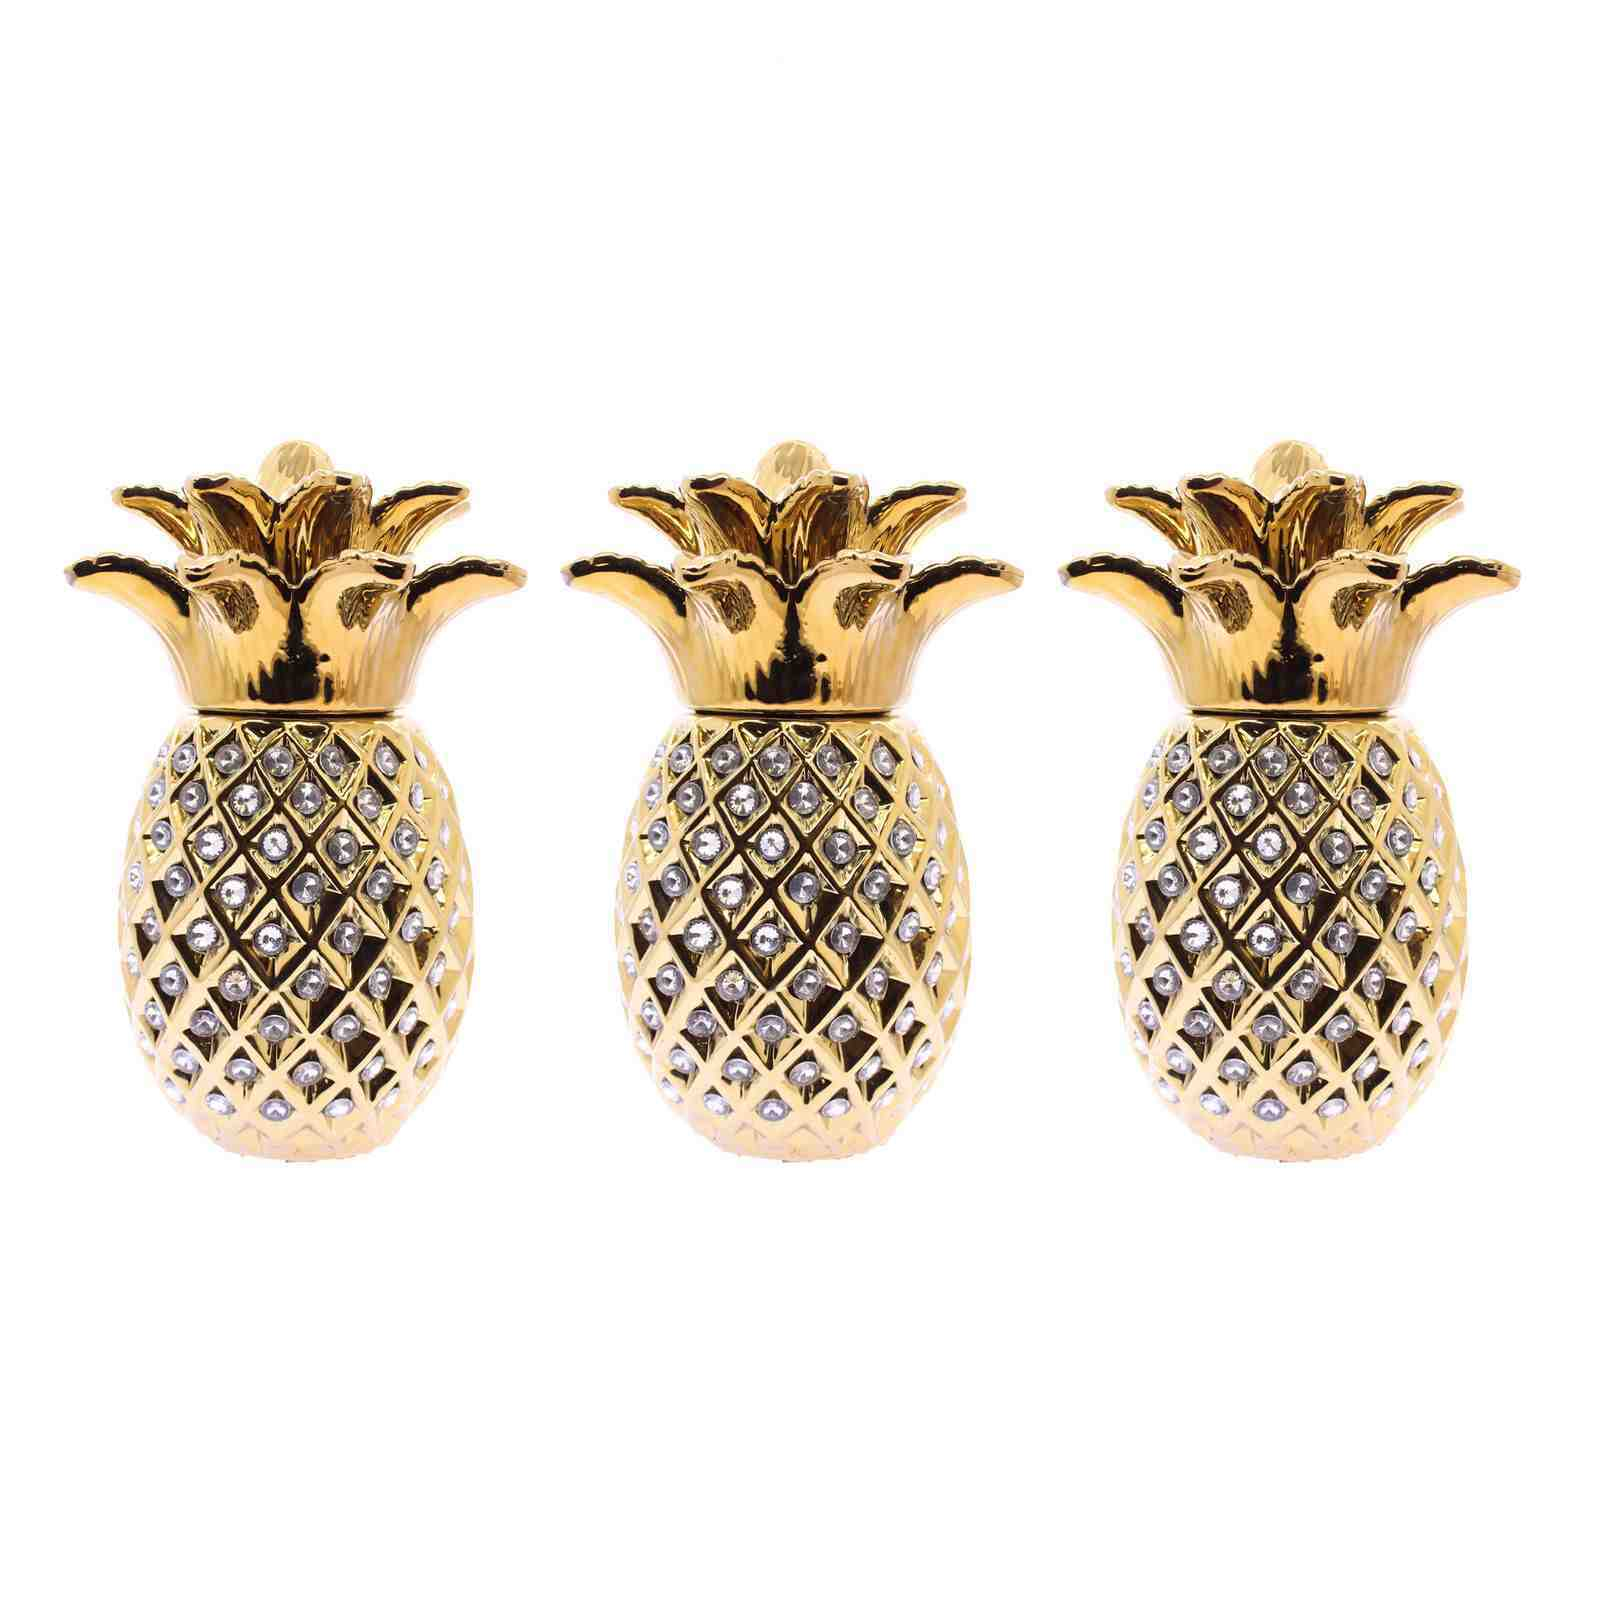 Gold PINEAPPLE JARS SET OF OF OF 3 SUGAR COFFEE BISCUIT ROMANY ORNAMENT GIFT STORAGE 13a059